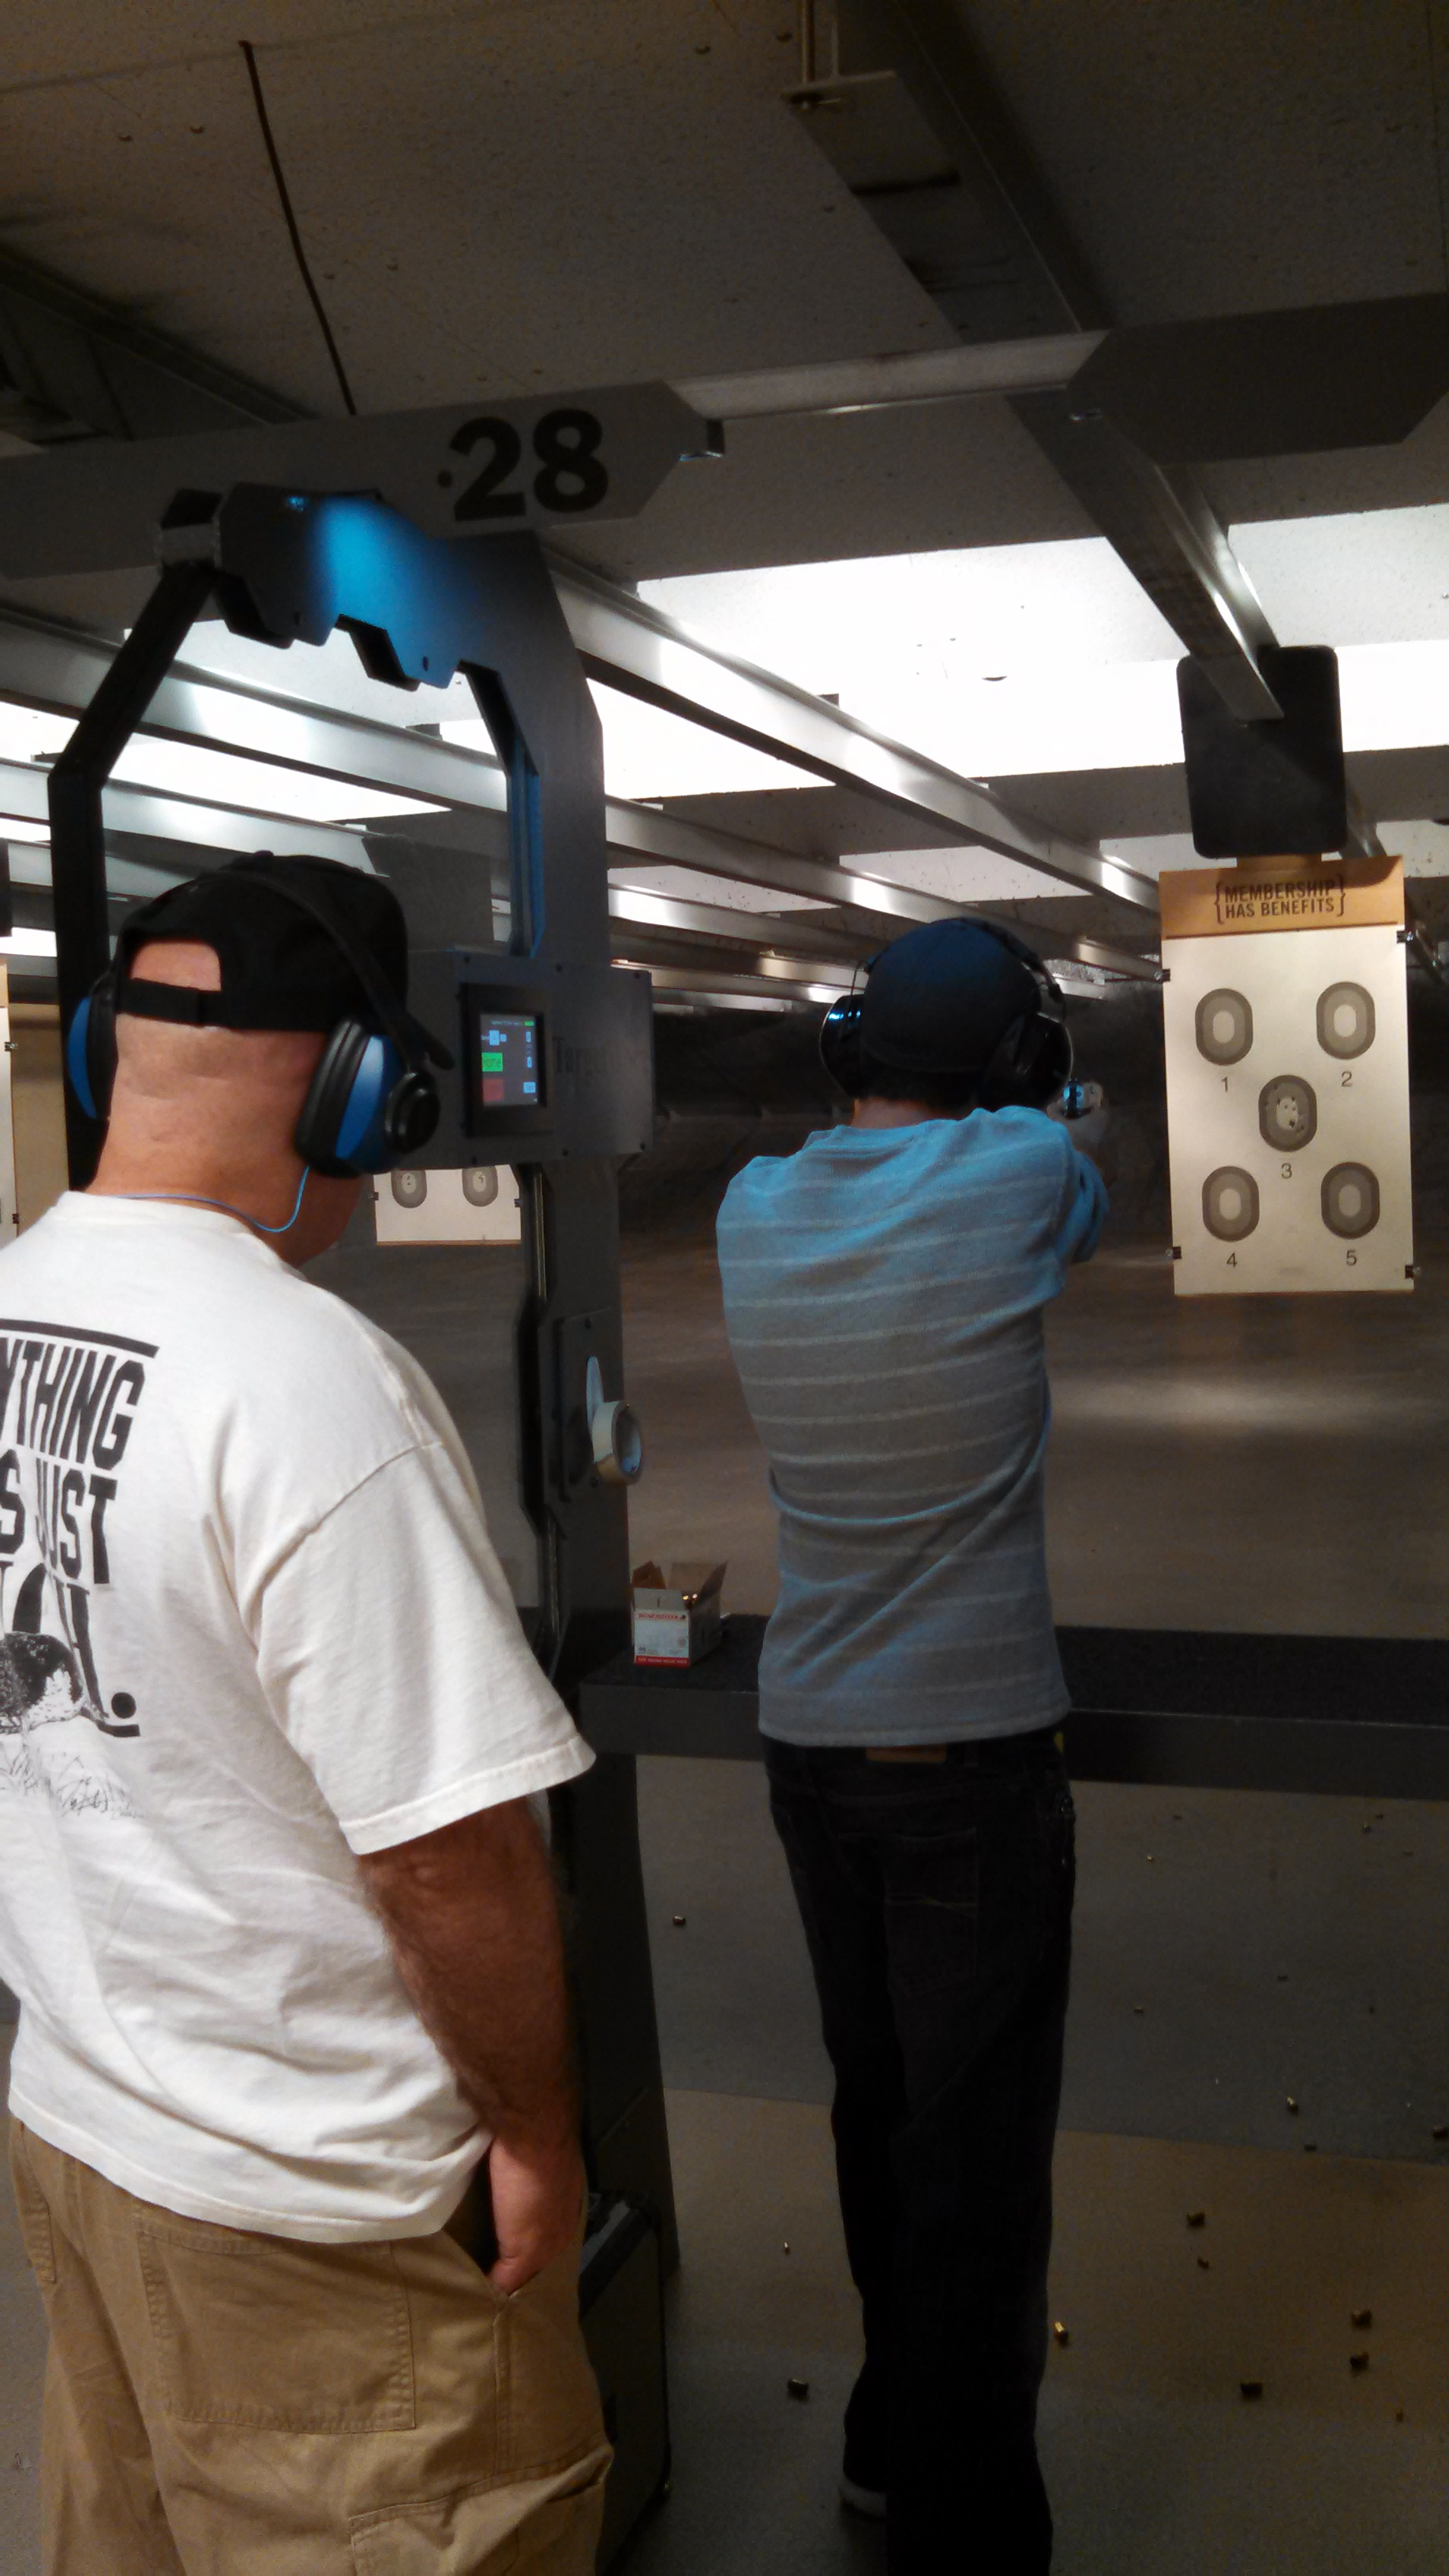 Awesome Day at the Range-img_20140524_091152_279.jpg